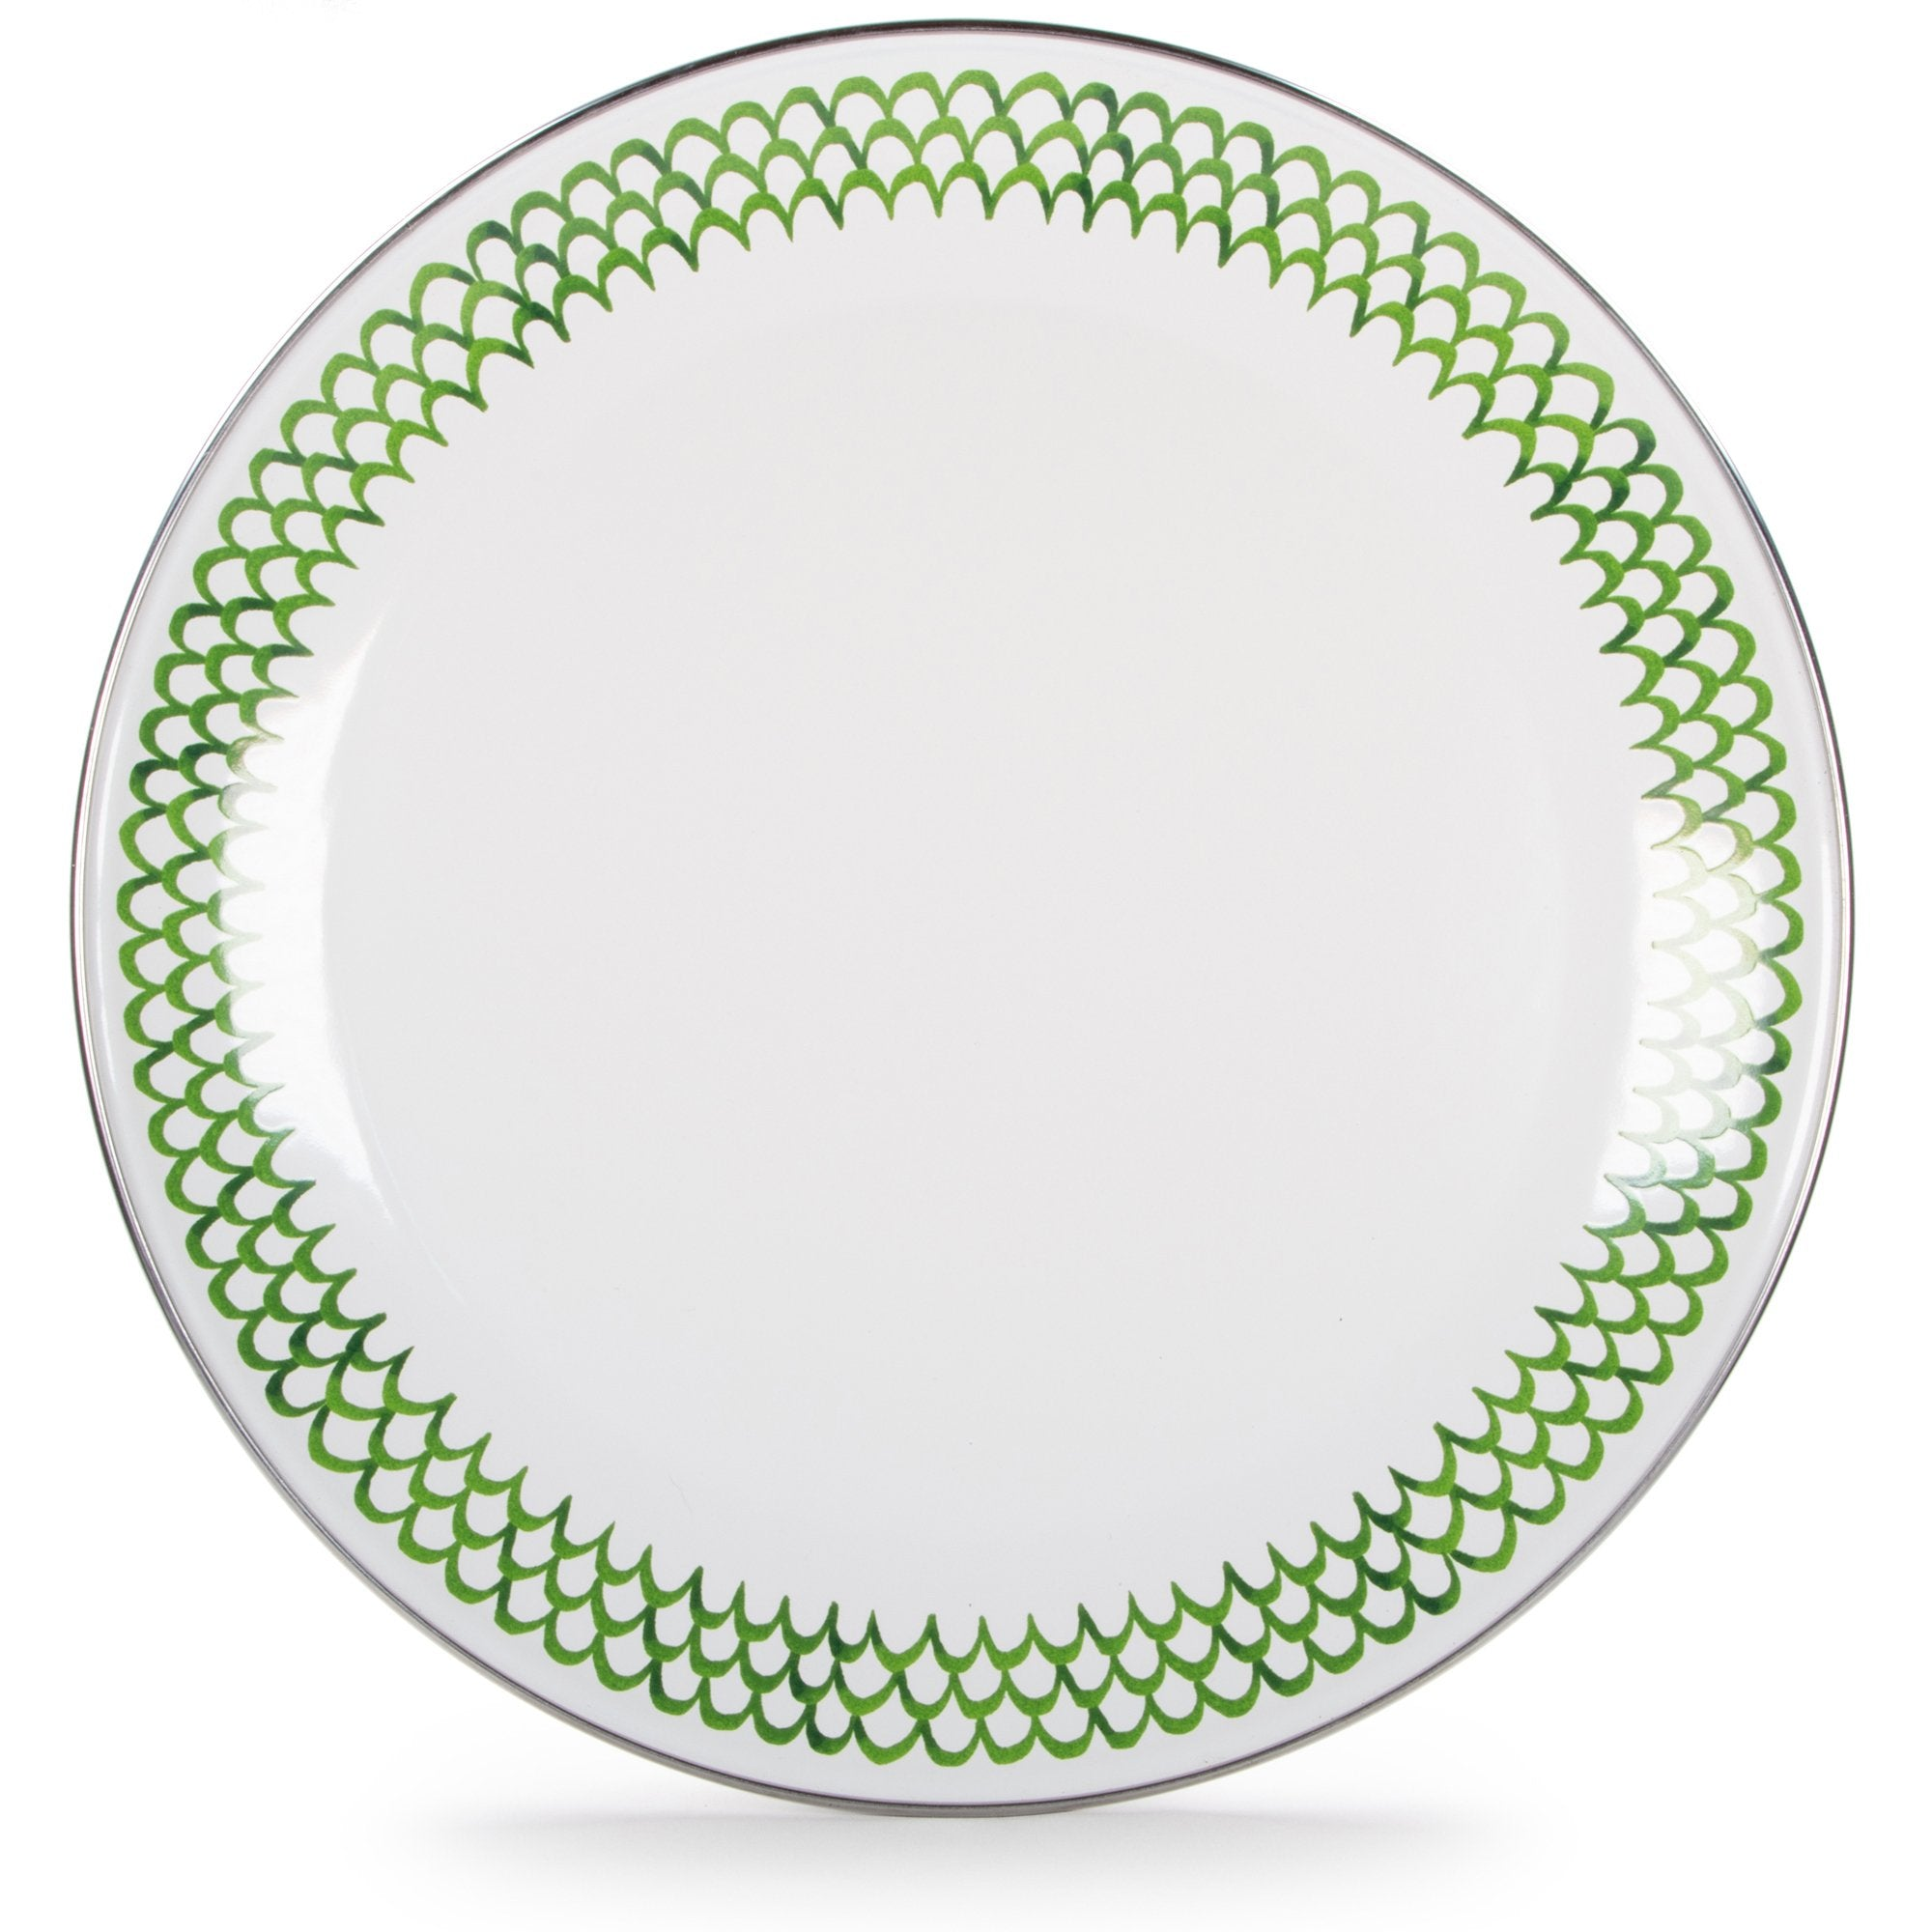 GS36 - Green Scallop Pattern - Charger